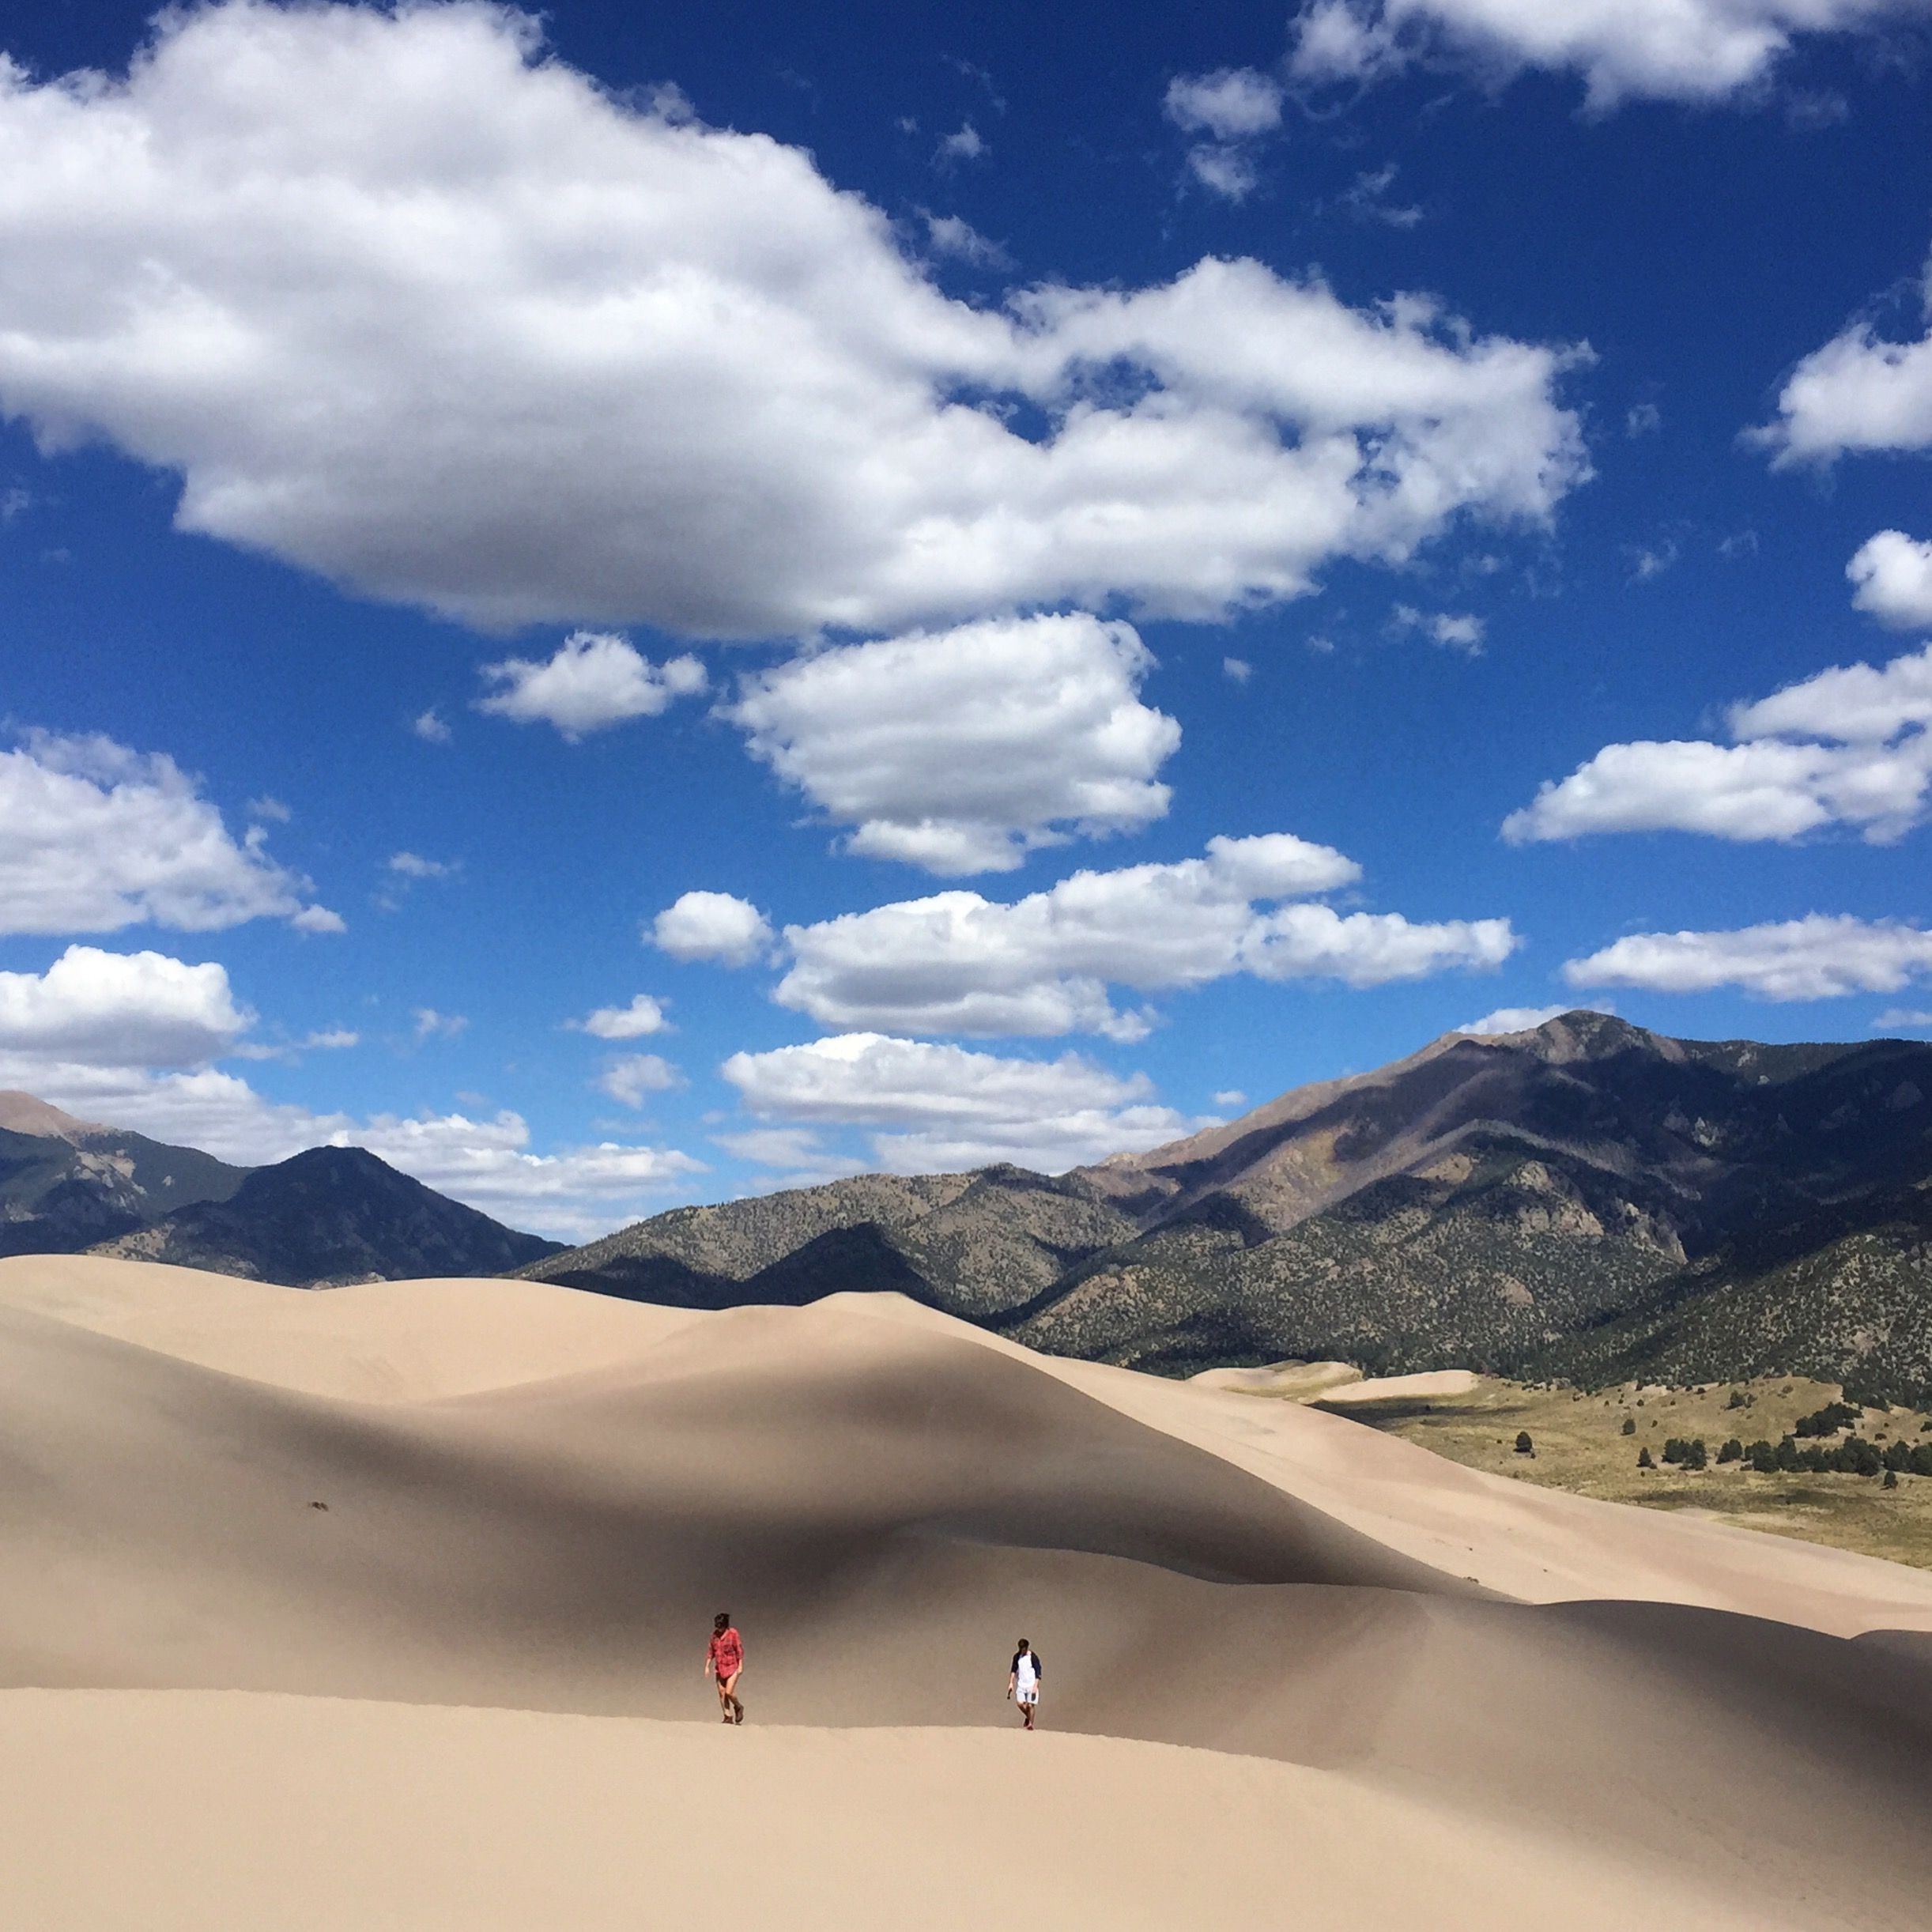 The Great Sand Dunes National Park of Colorado